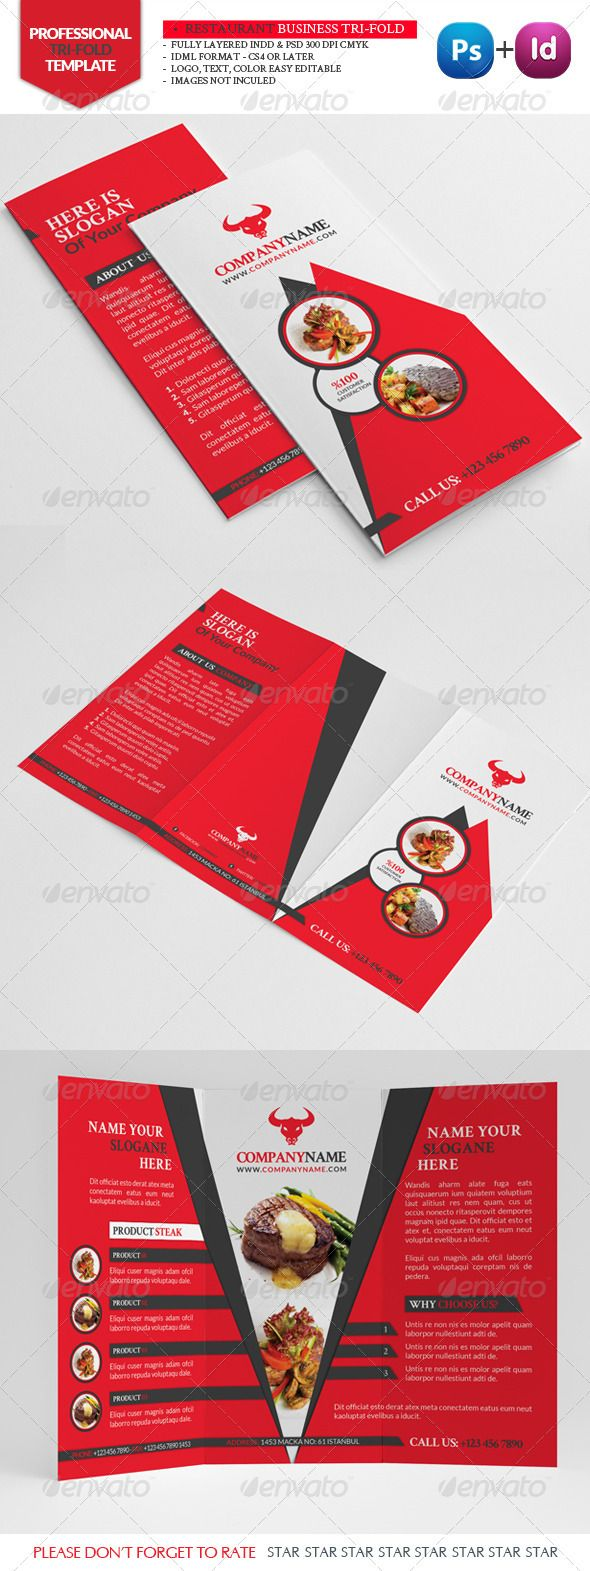 Best Premium Brochure Templates Images On Pinterest Brochures - 85x11 tri fold brochure template